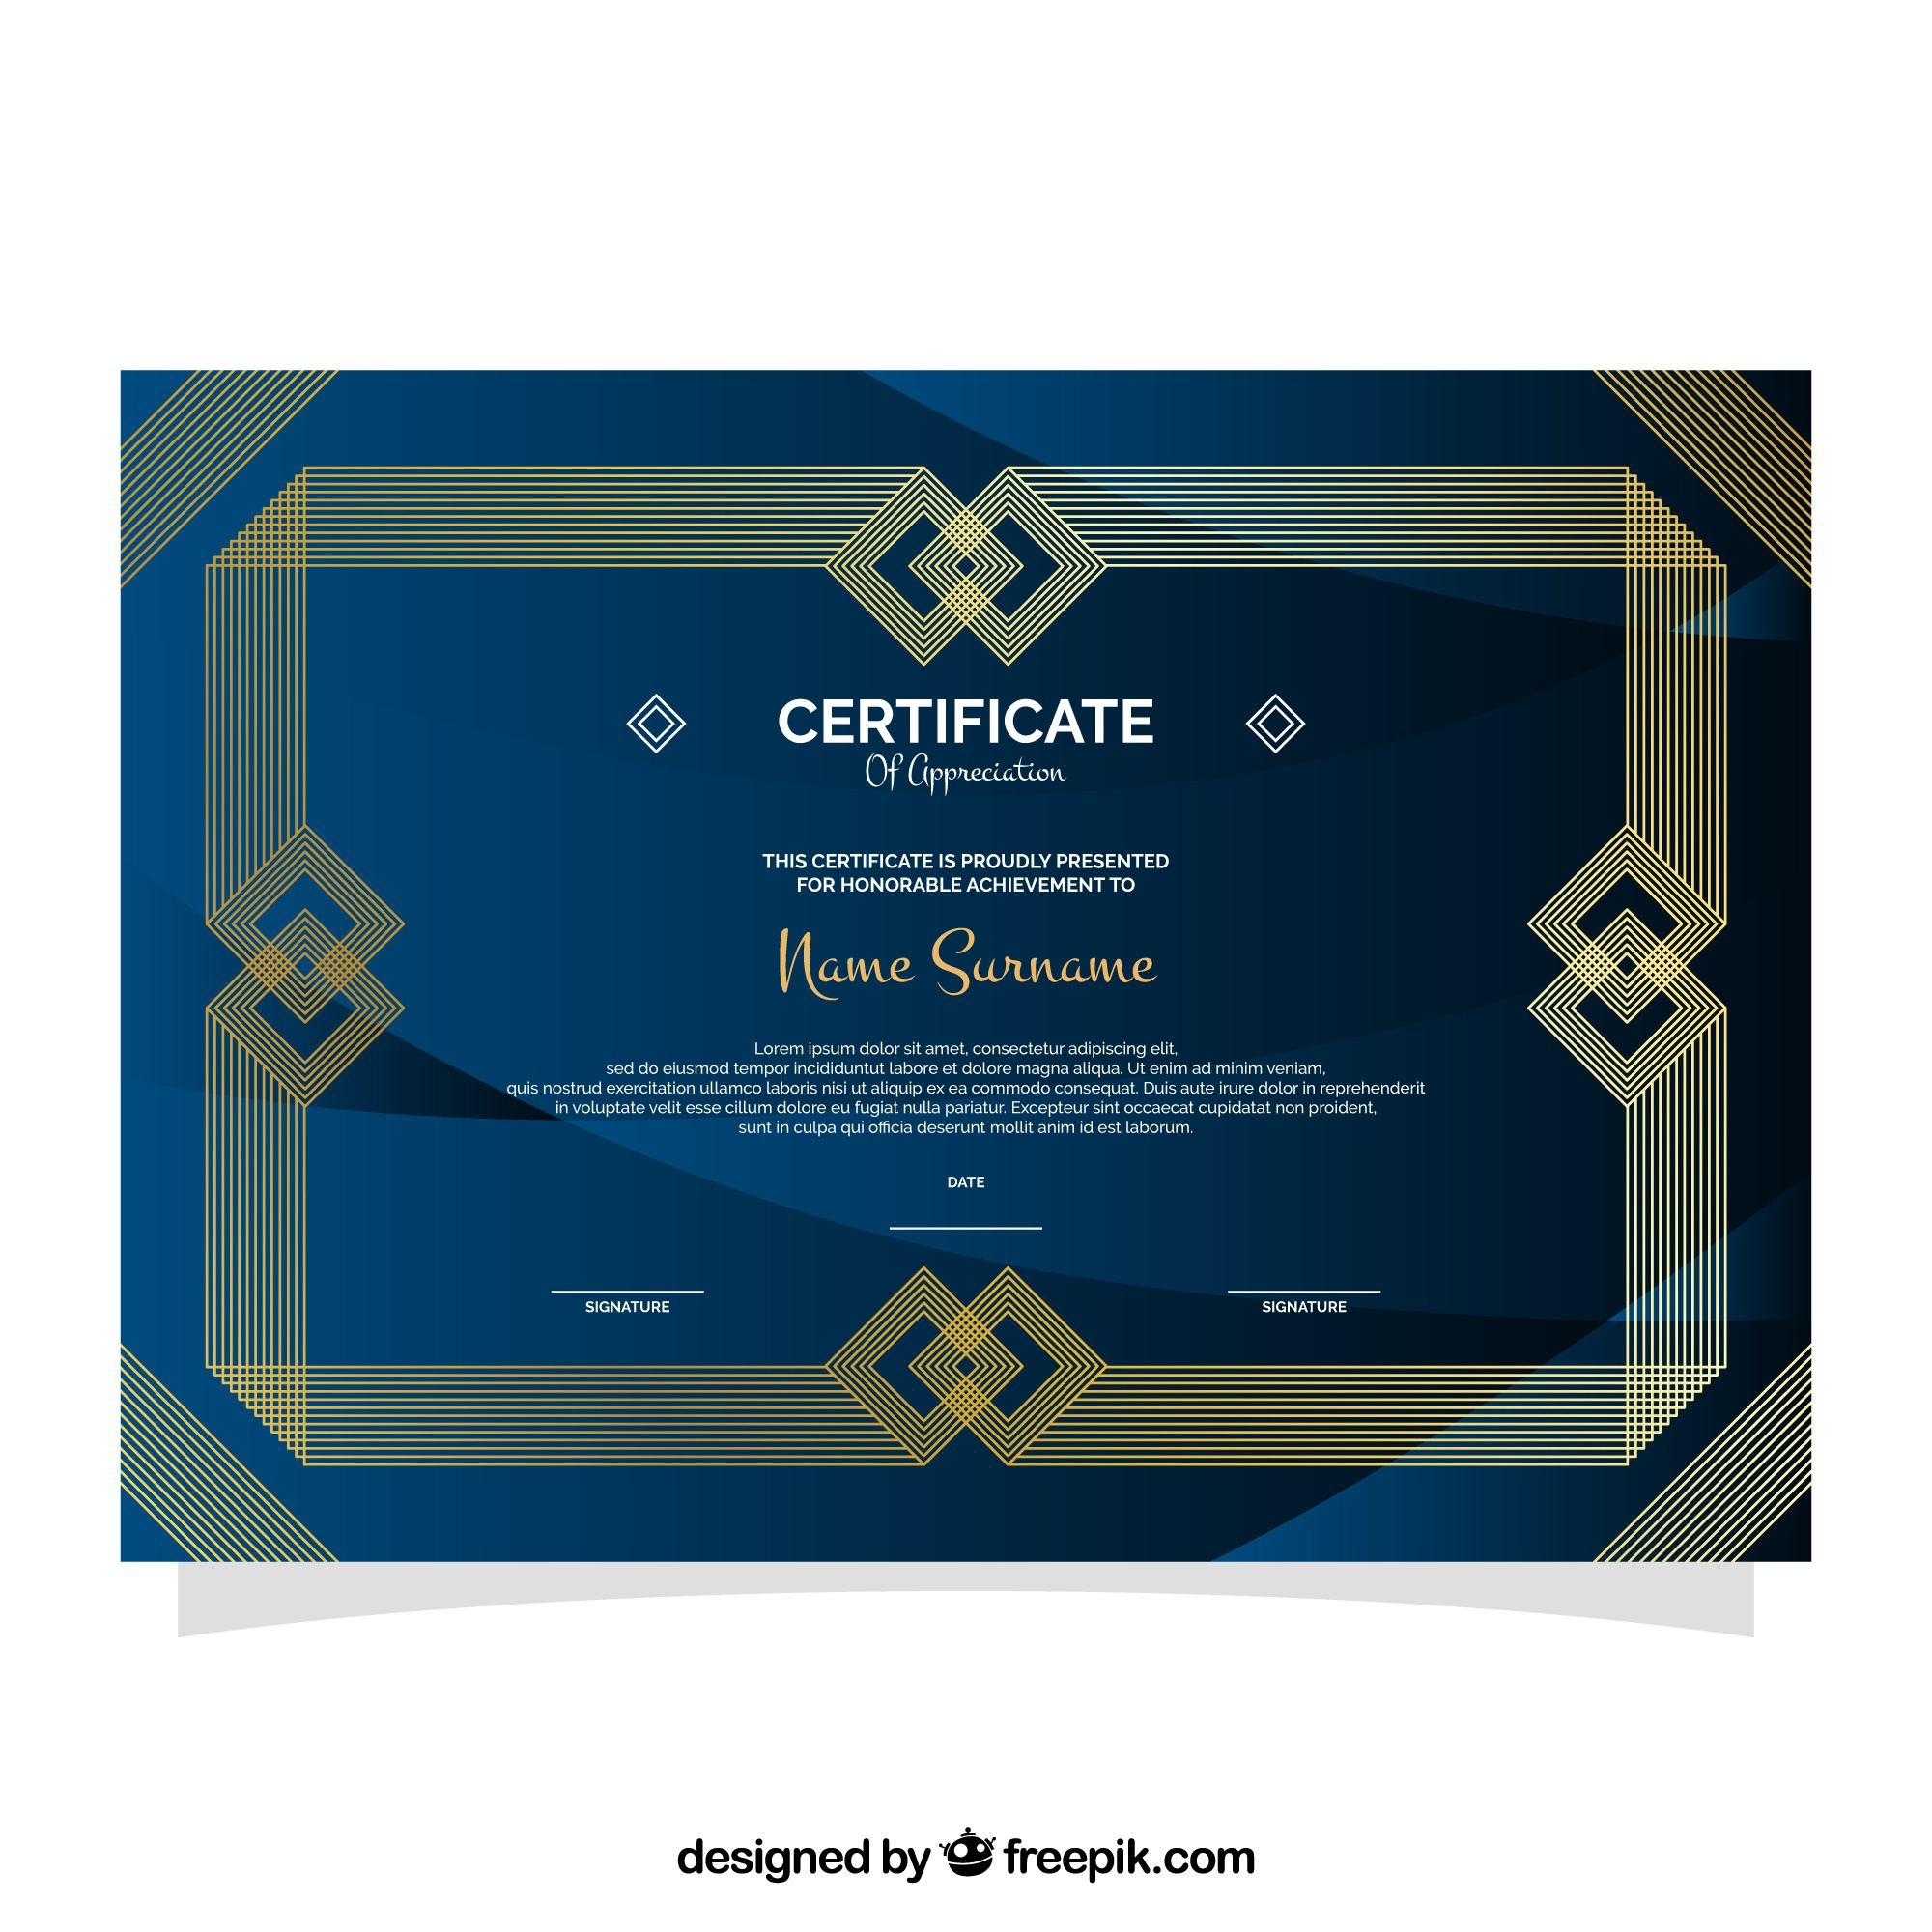 Elegant certificaat of excellence